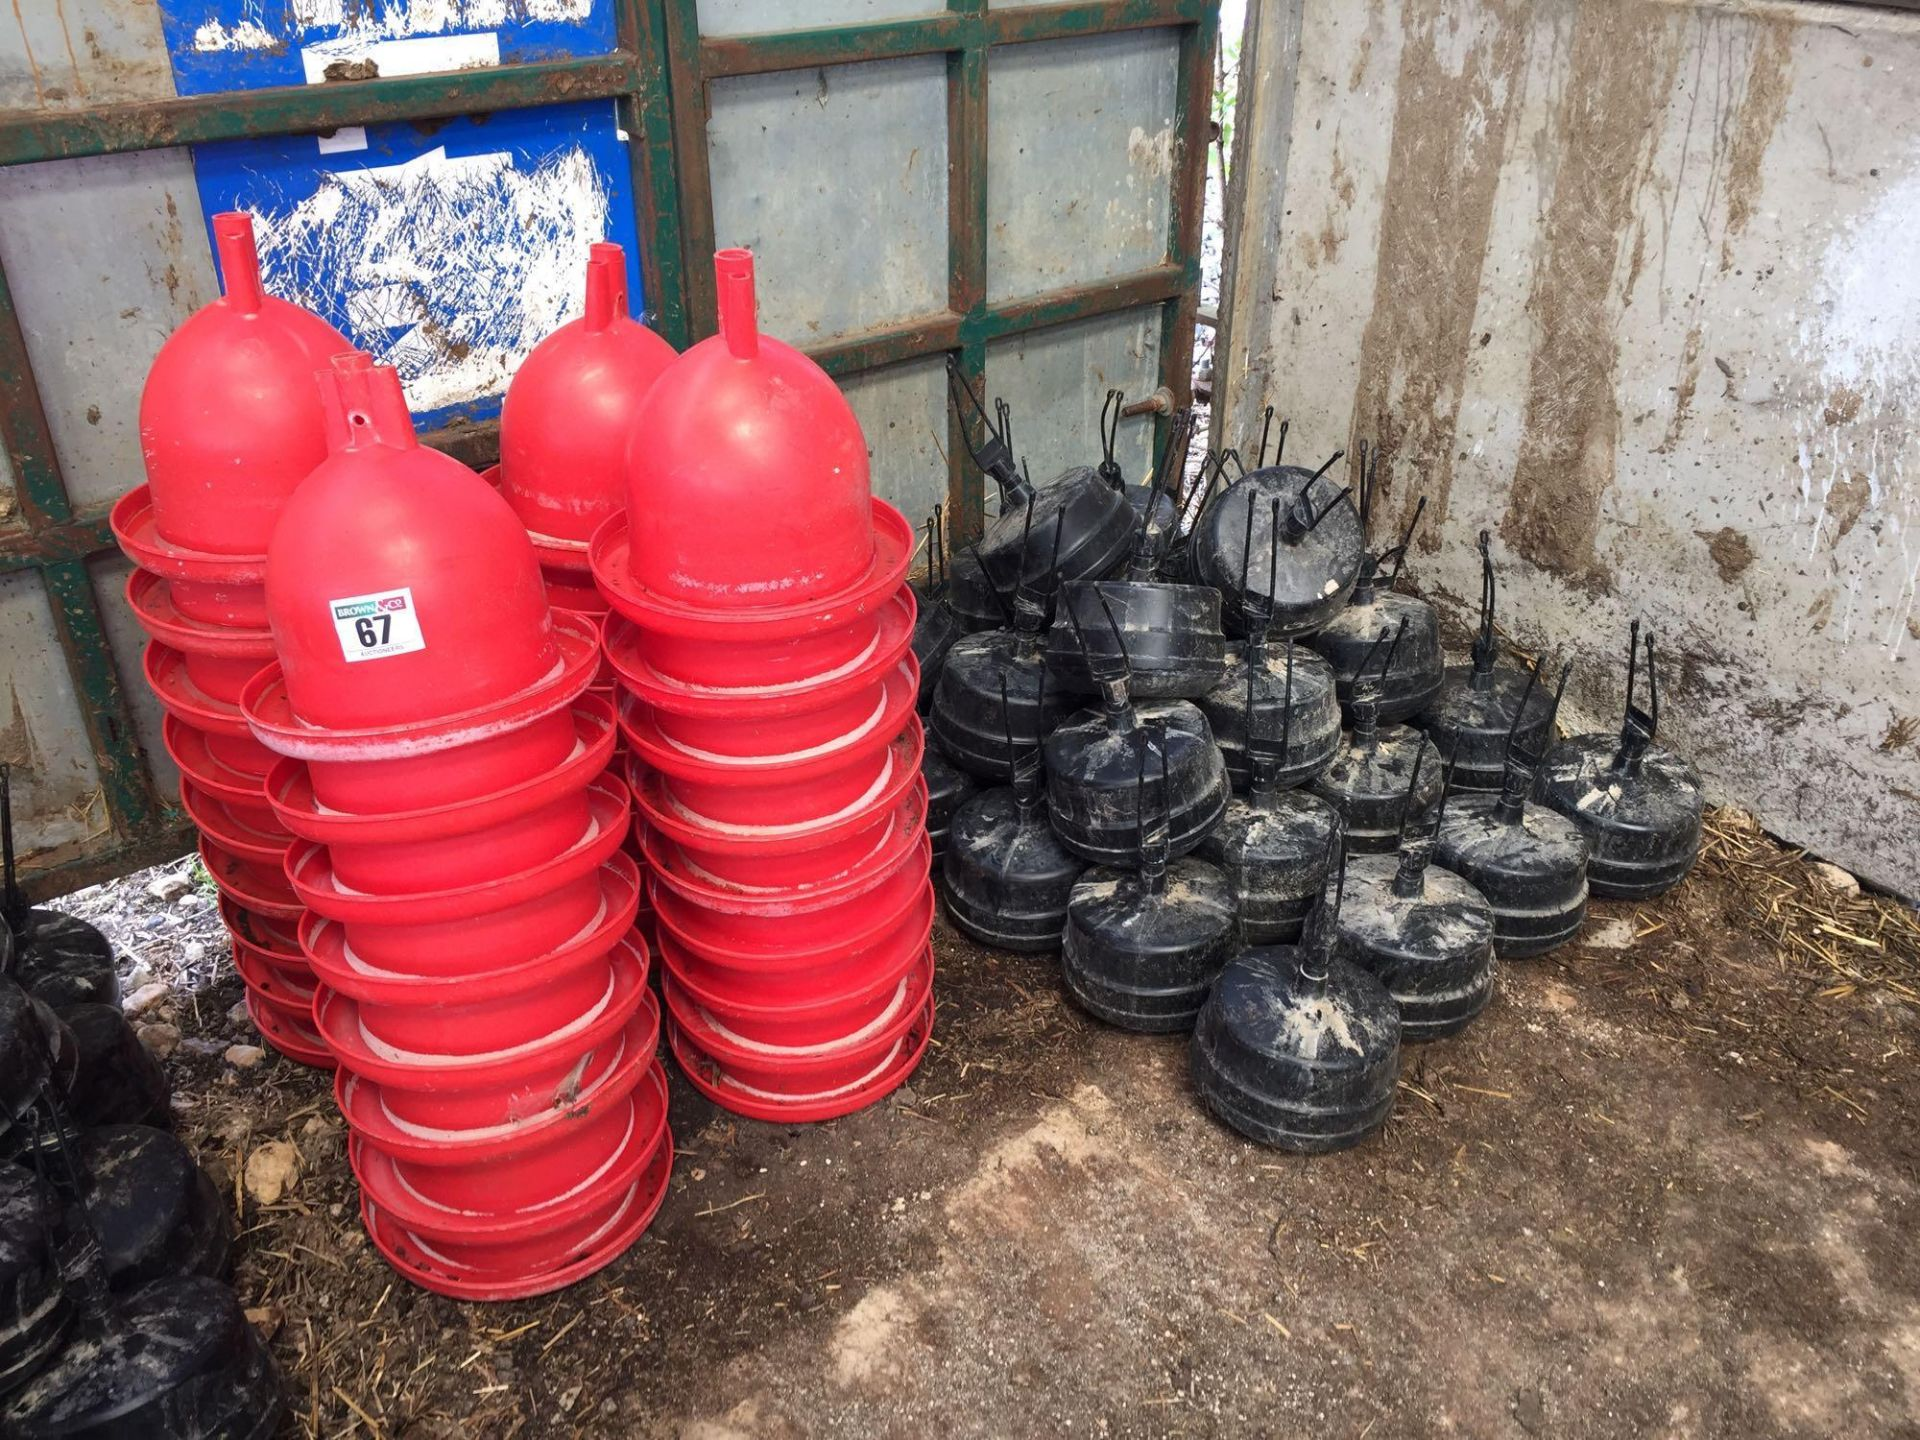 Lot 67 - Quantity poultry water drinkers and weights